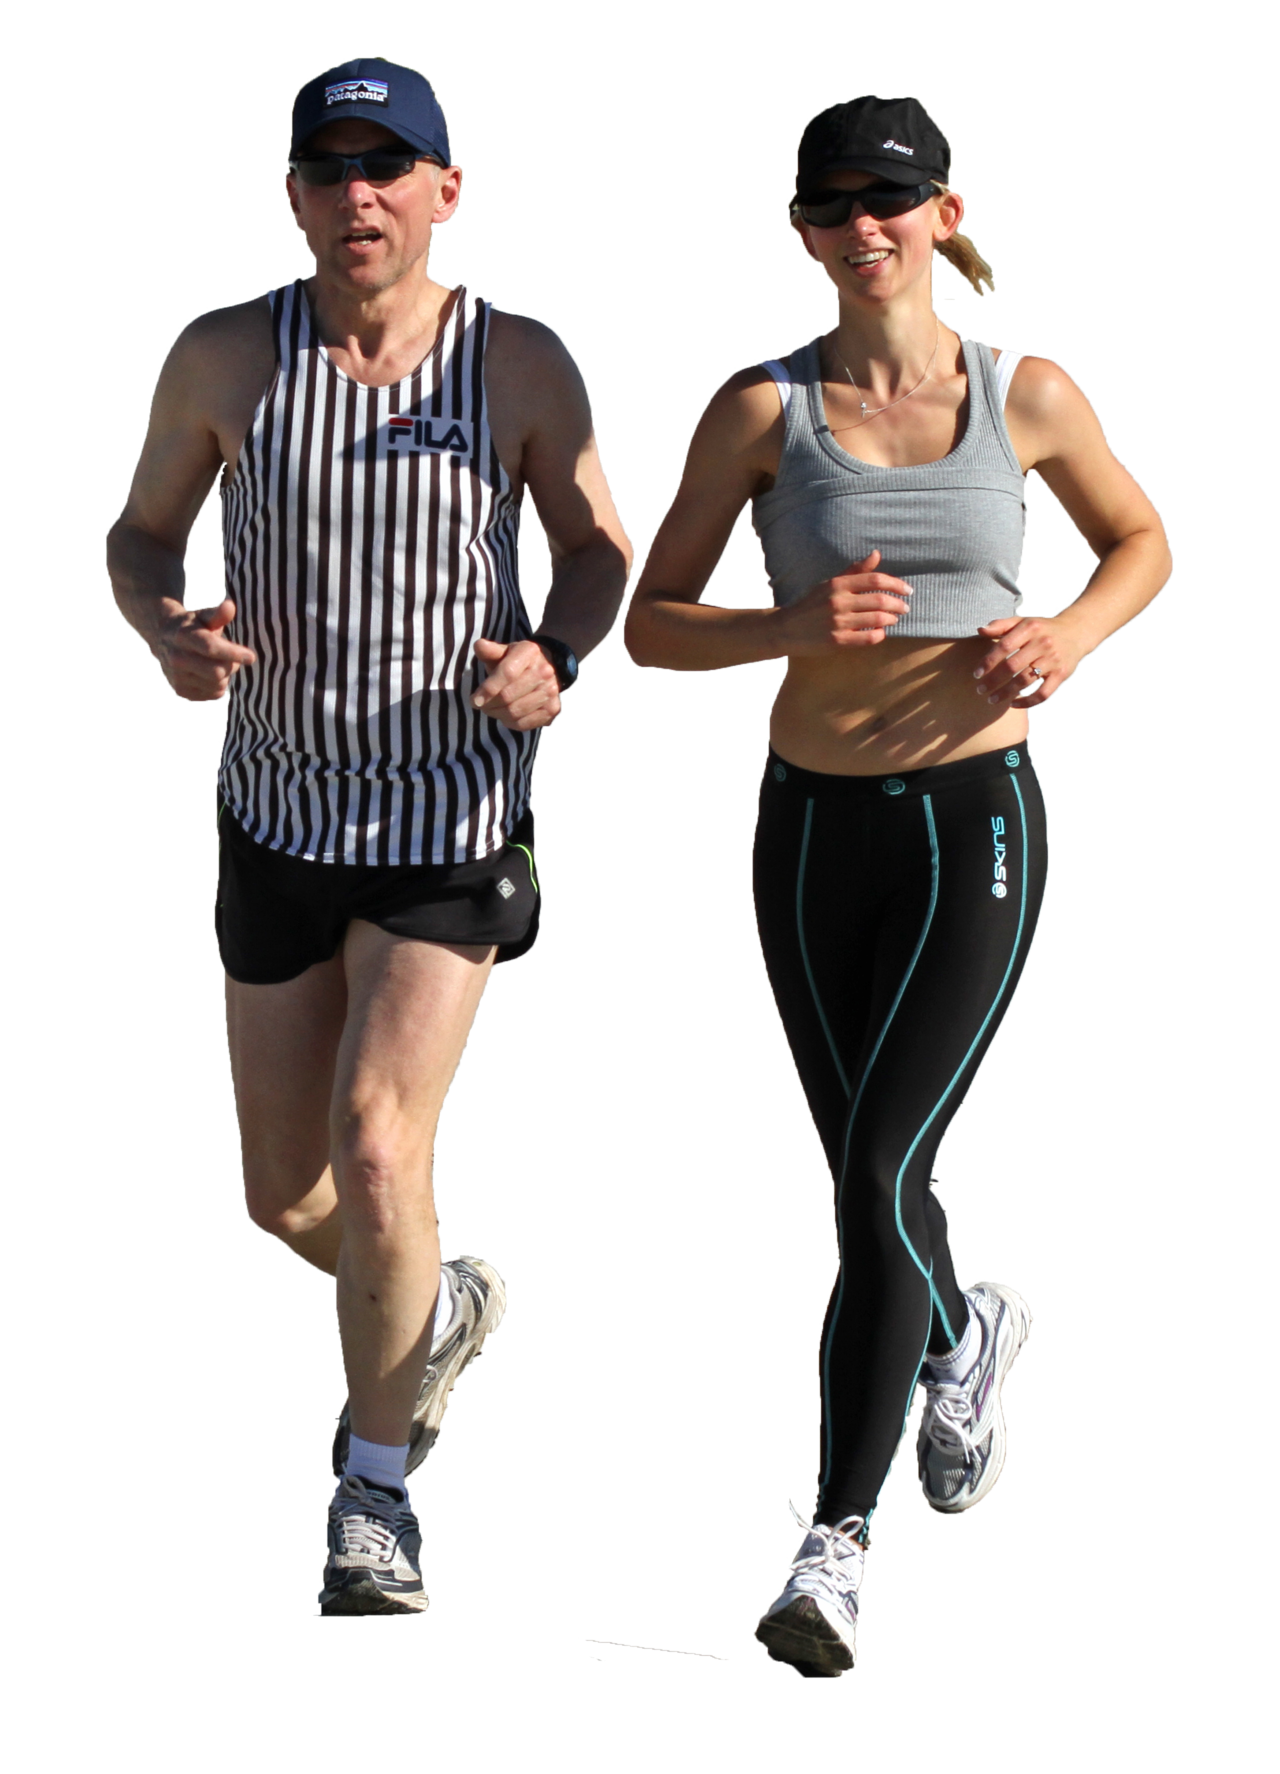 People png download. Running image